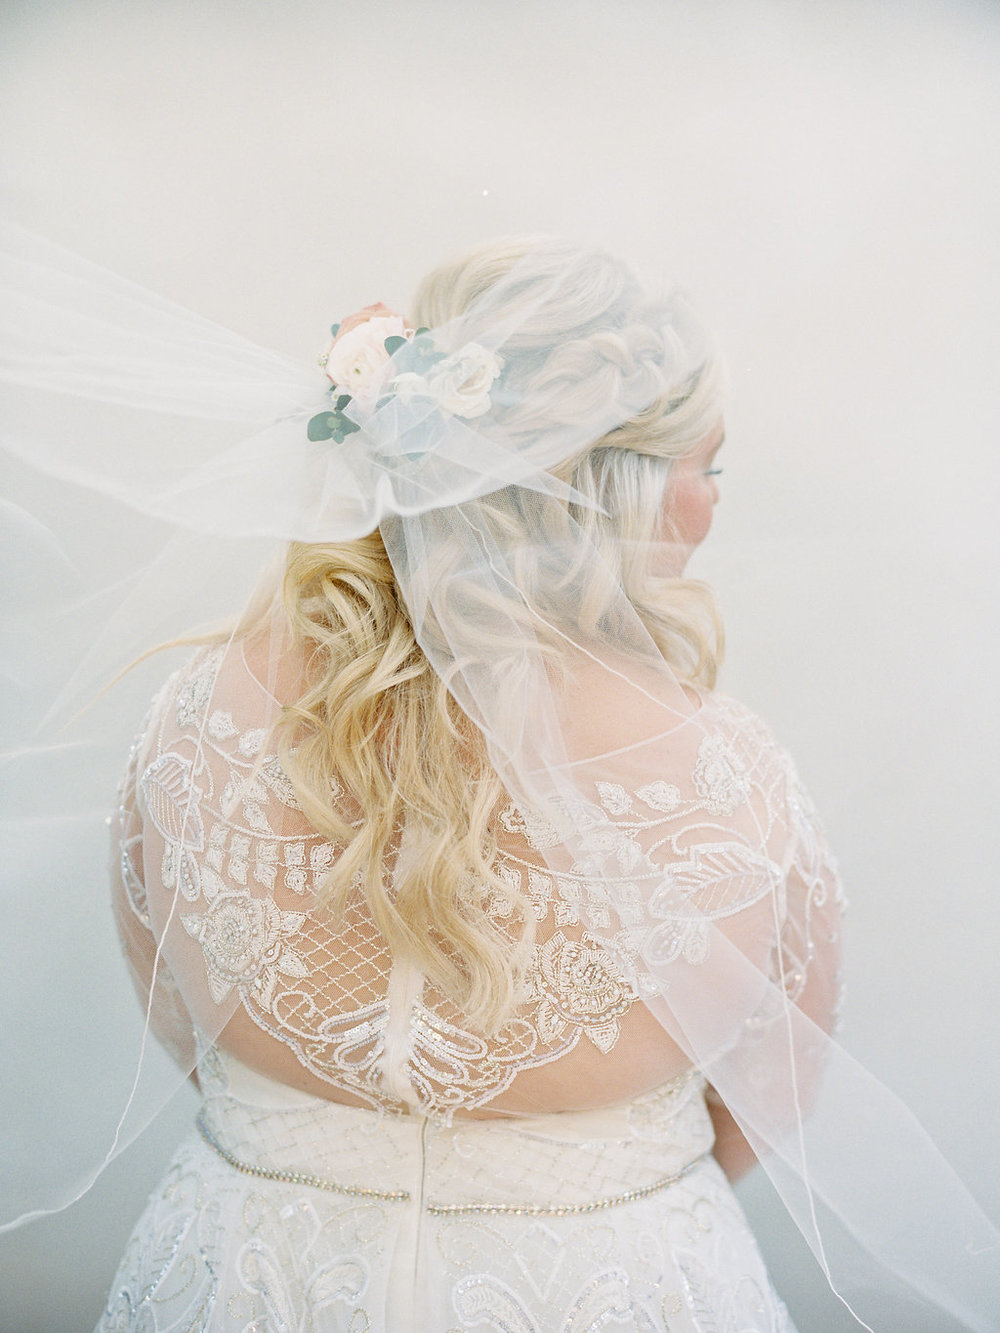 Wedding Dress detail with veil.jpg